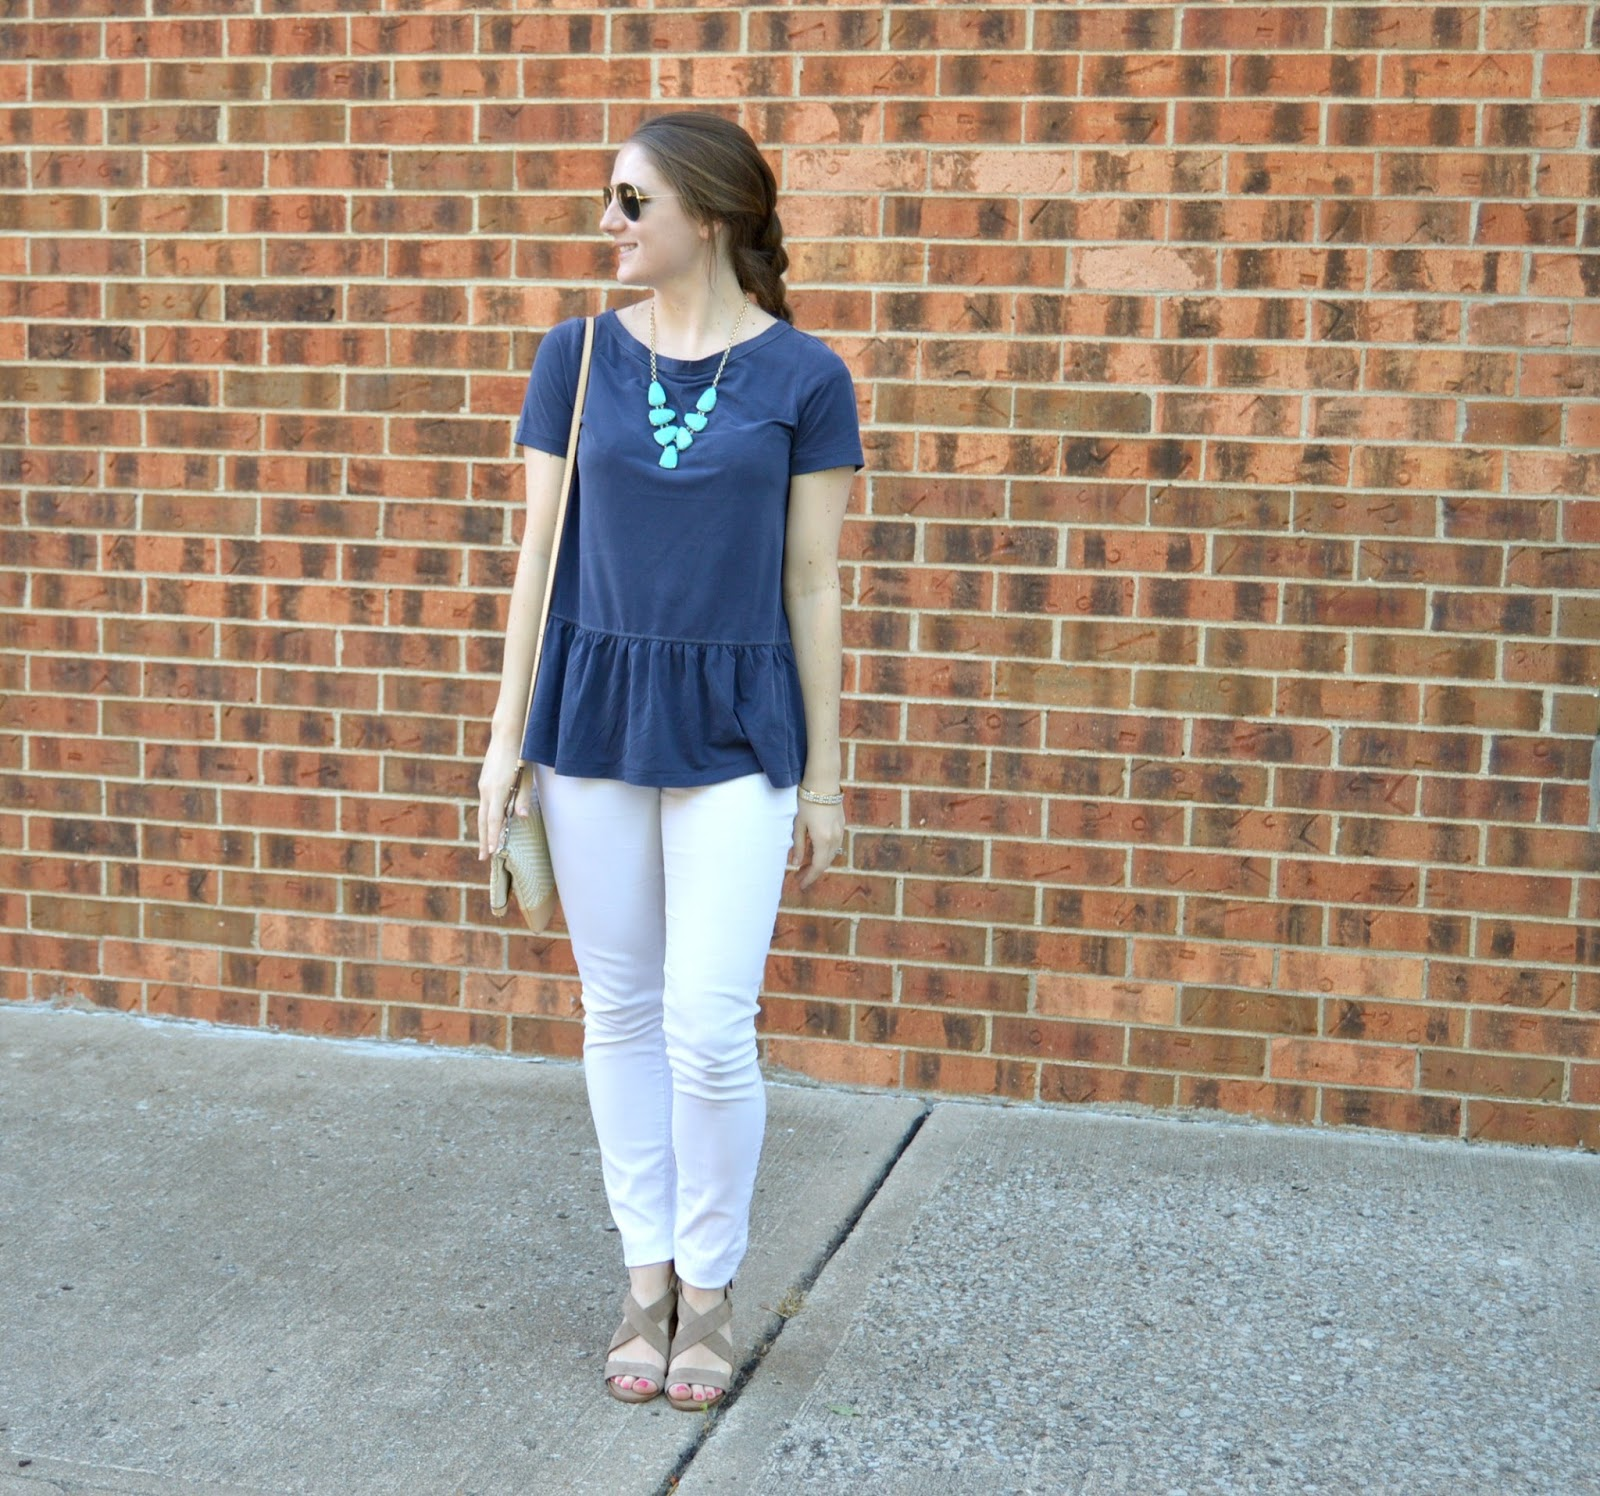 blue ruffle peplum top | how to style a peplum top | white denim outfit ideas | what to wear with white jeans | what to wear with white jeans this summer | summer outfit ideas | cute outfits to wear this summer | summer style | a memory of us | your life styled |